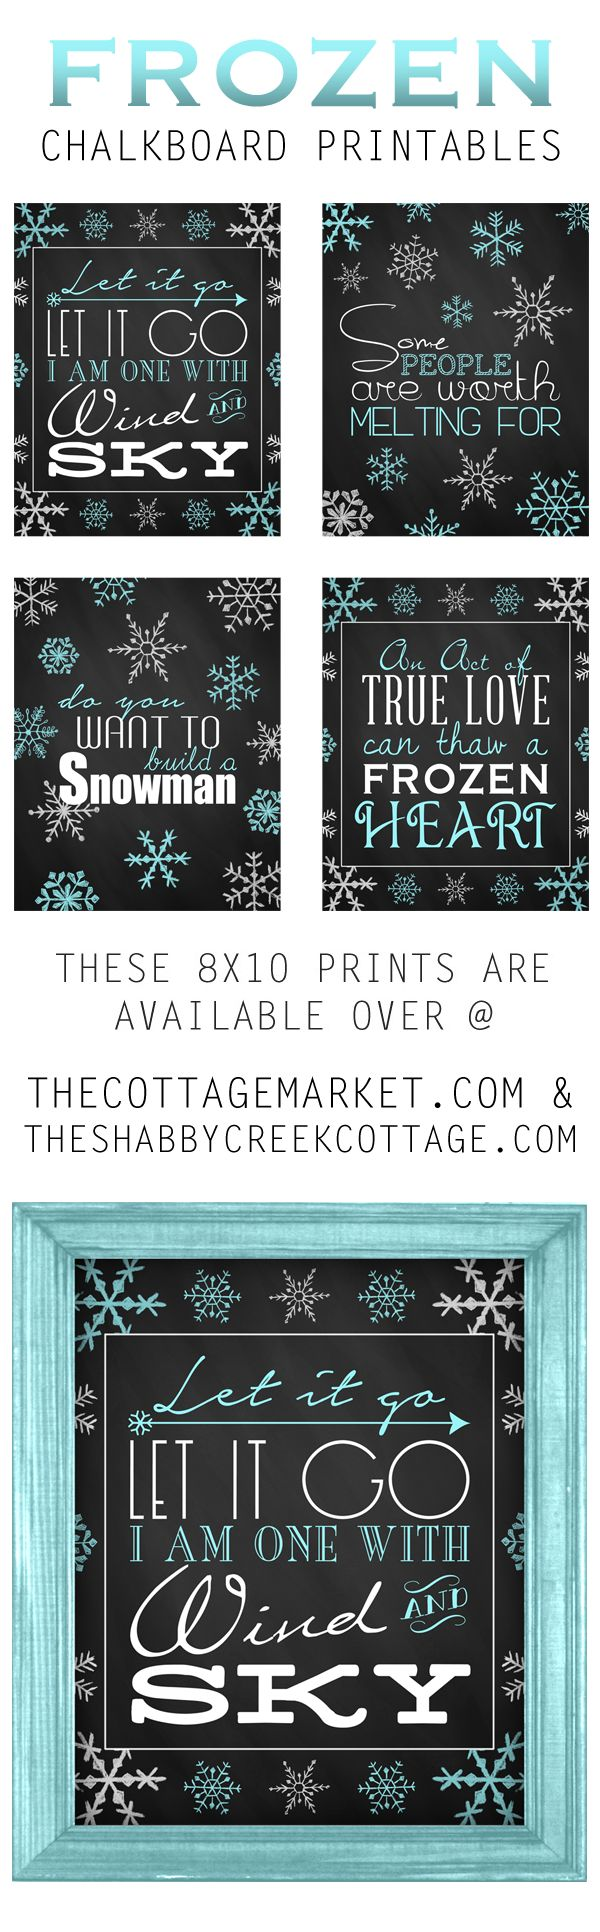 Want almost instant art? This set of FREE Frozen Chalkboard Printables is perfect for winter… or really anytime of year if you're a Frozen fan!